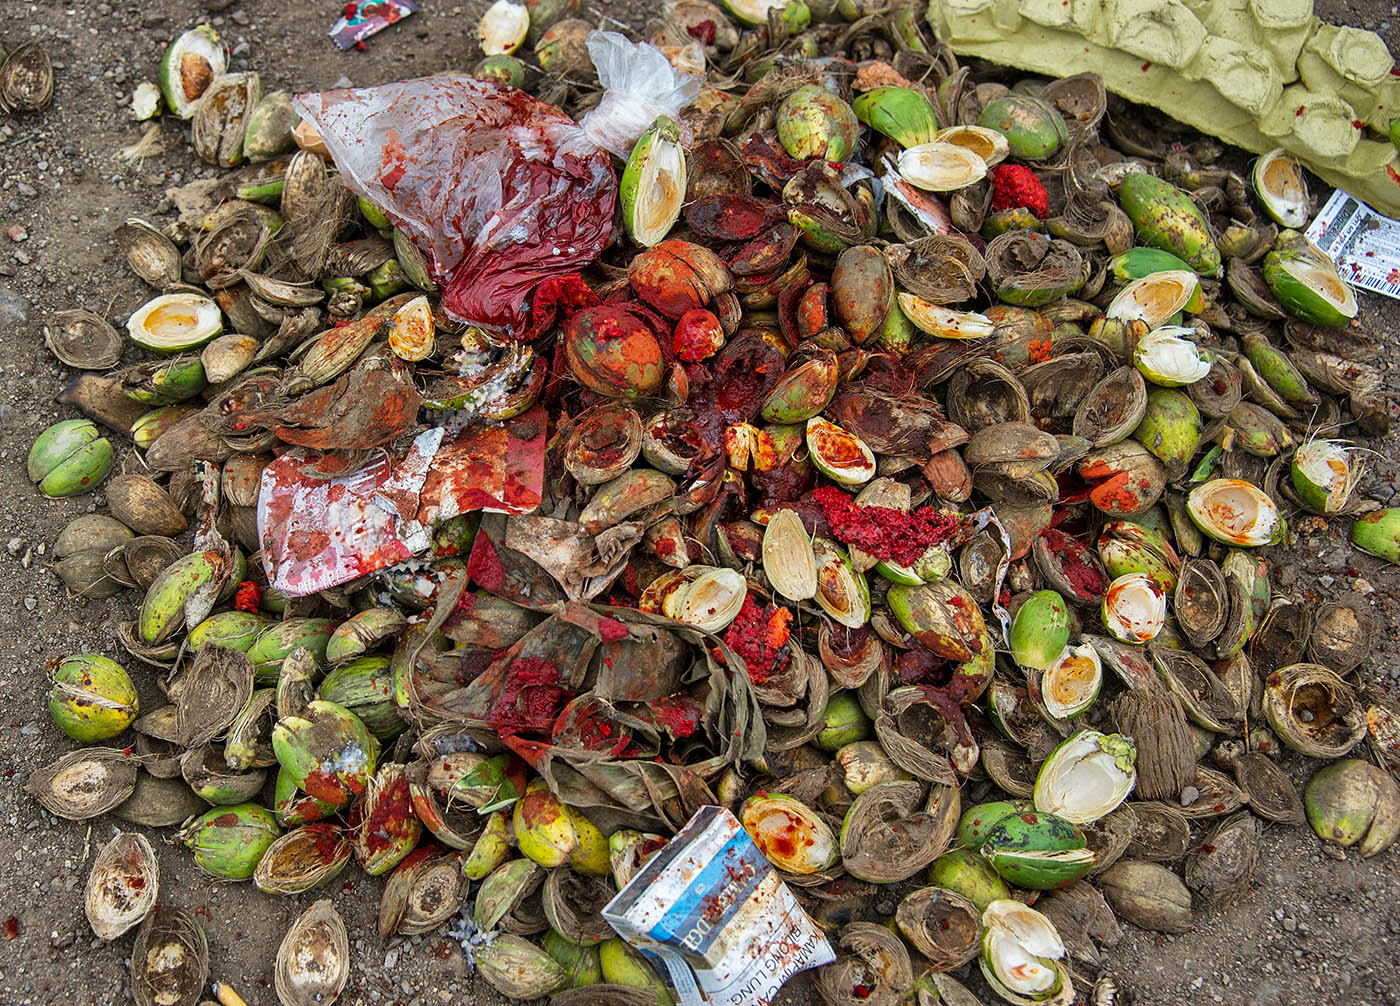 Betel nut husks, mustard flowers and spittle that has long been a feature of Port Moresby streets.  © Brian Cassey